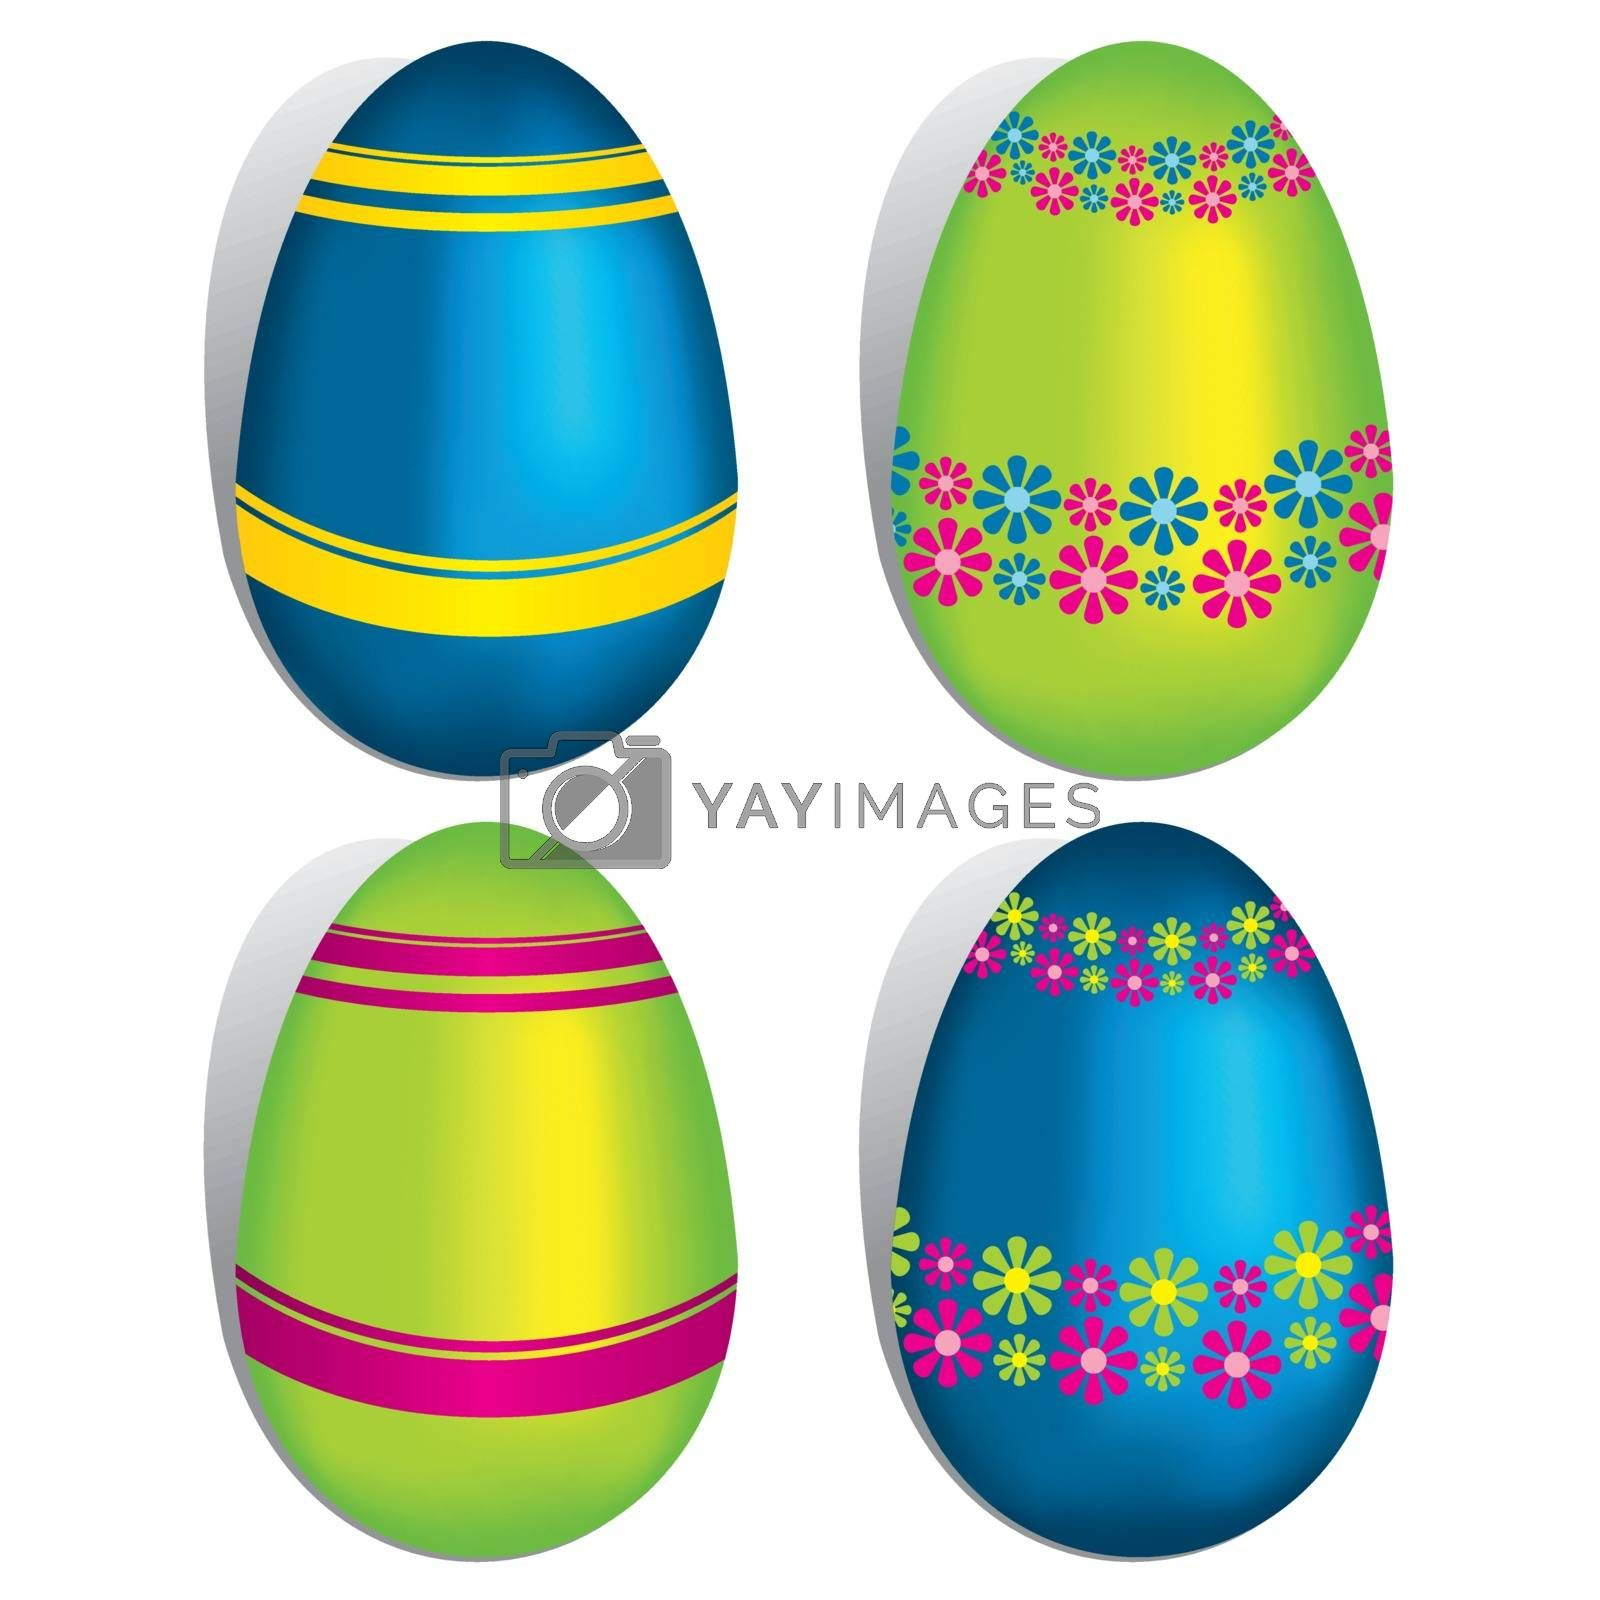 Royalty free image of Easter Eggs by nicousnake